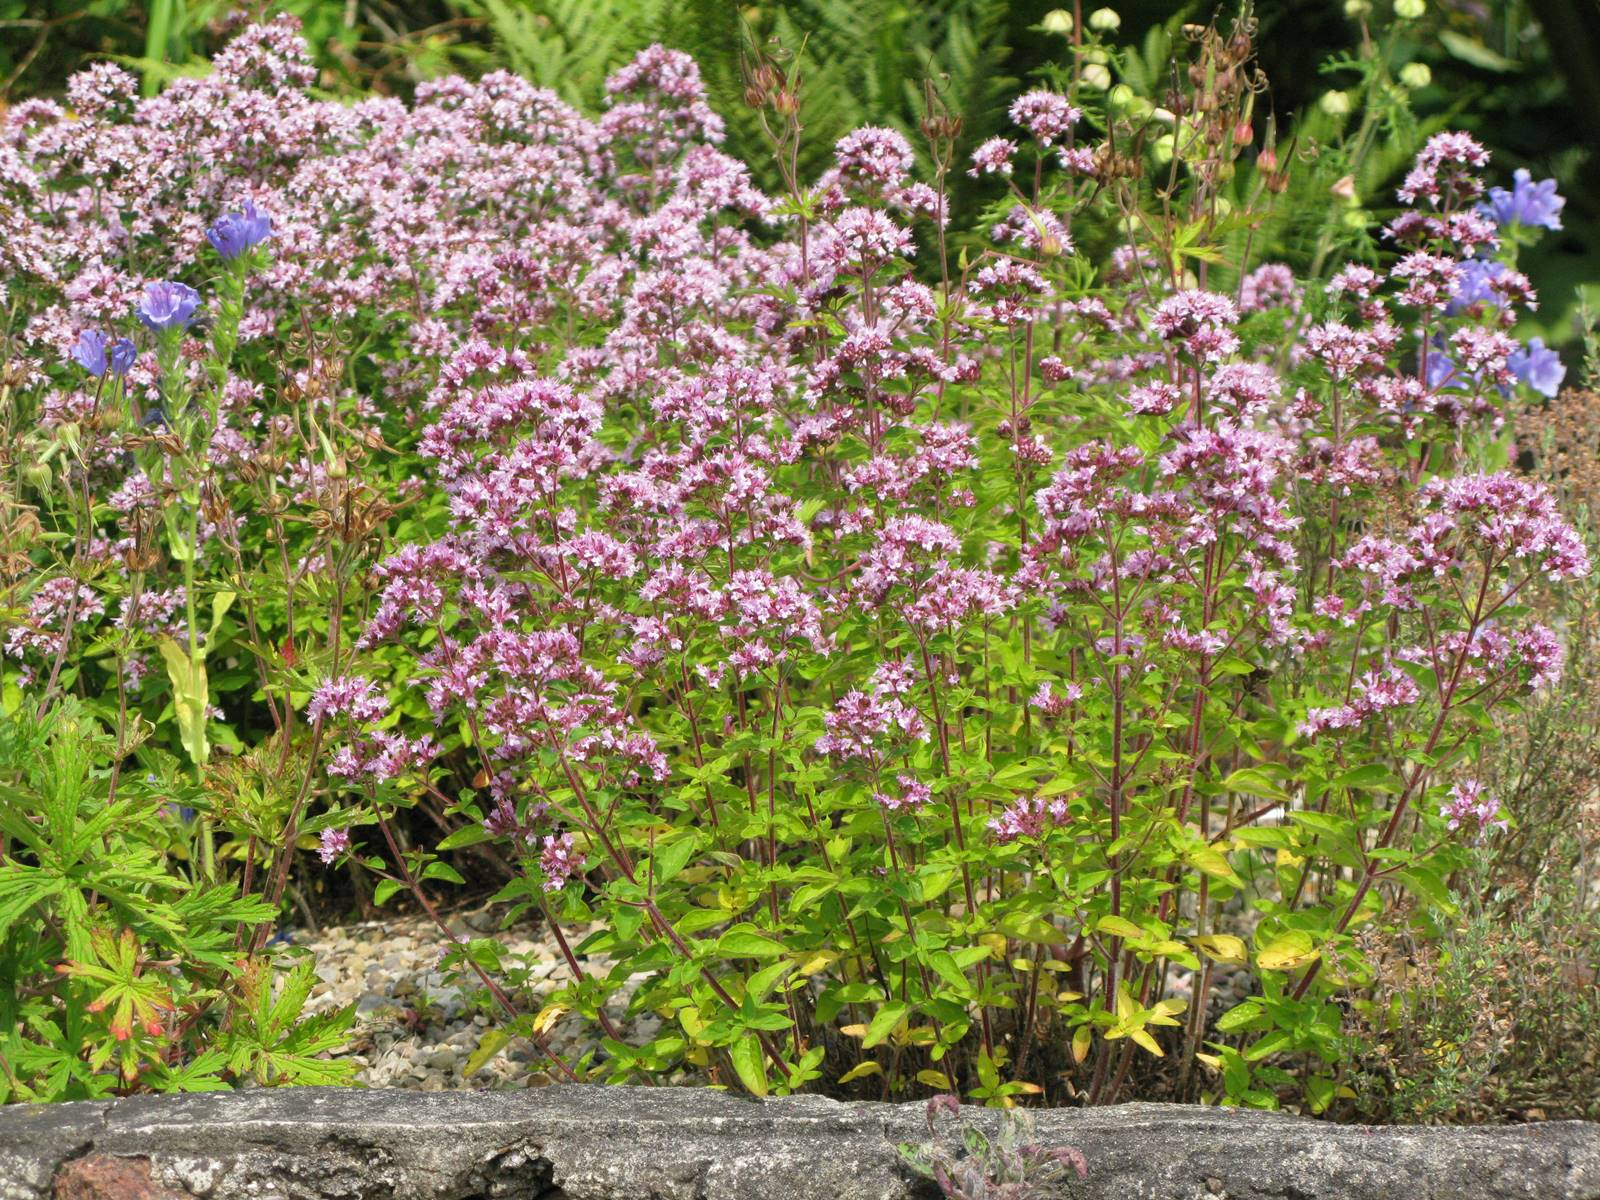 Chesters Walled Garden England (6)